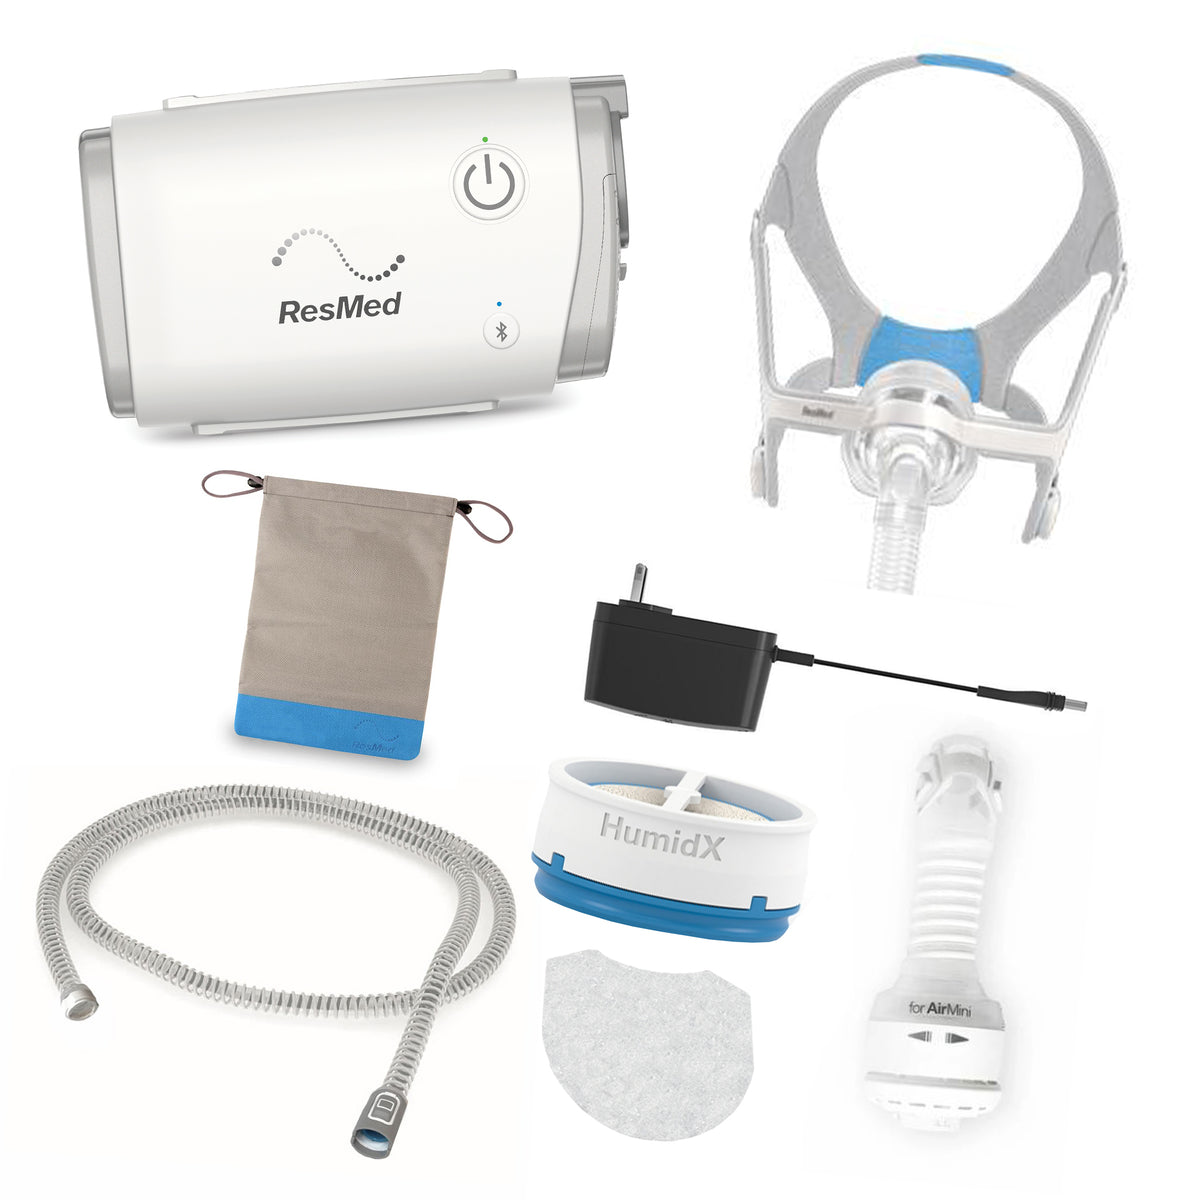 AirMini Travel Bundle with AirTouch N20 CPAP Mask